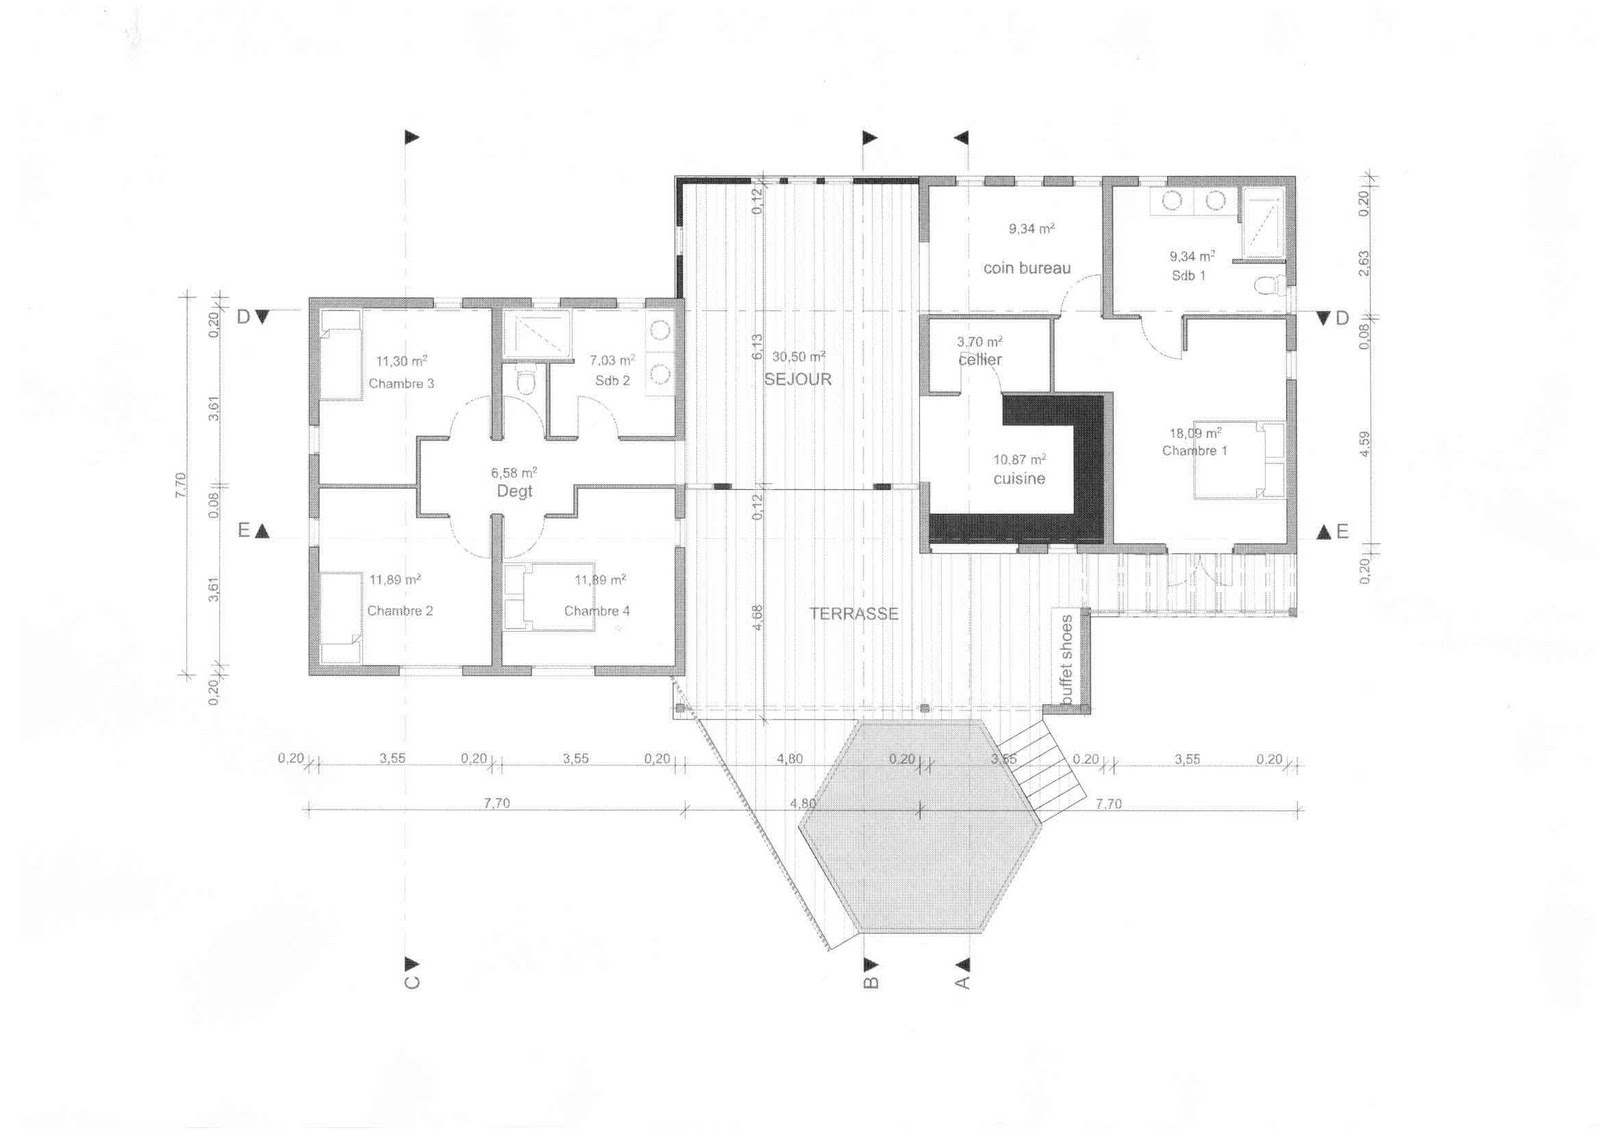 Plan de maison 3 chambres salon for Plan maison contemporaine 3 chambres